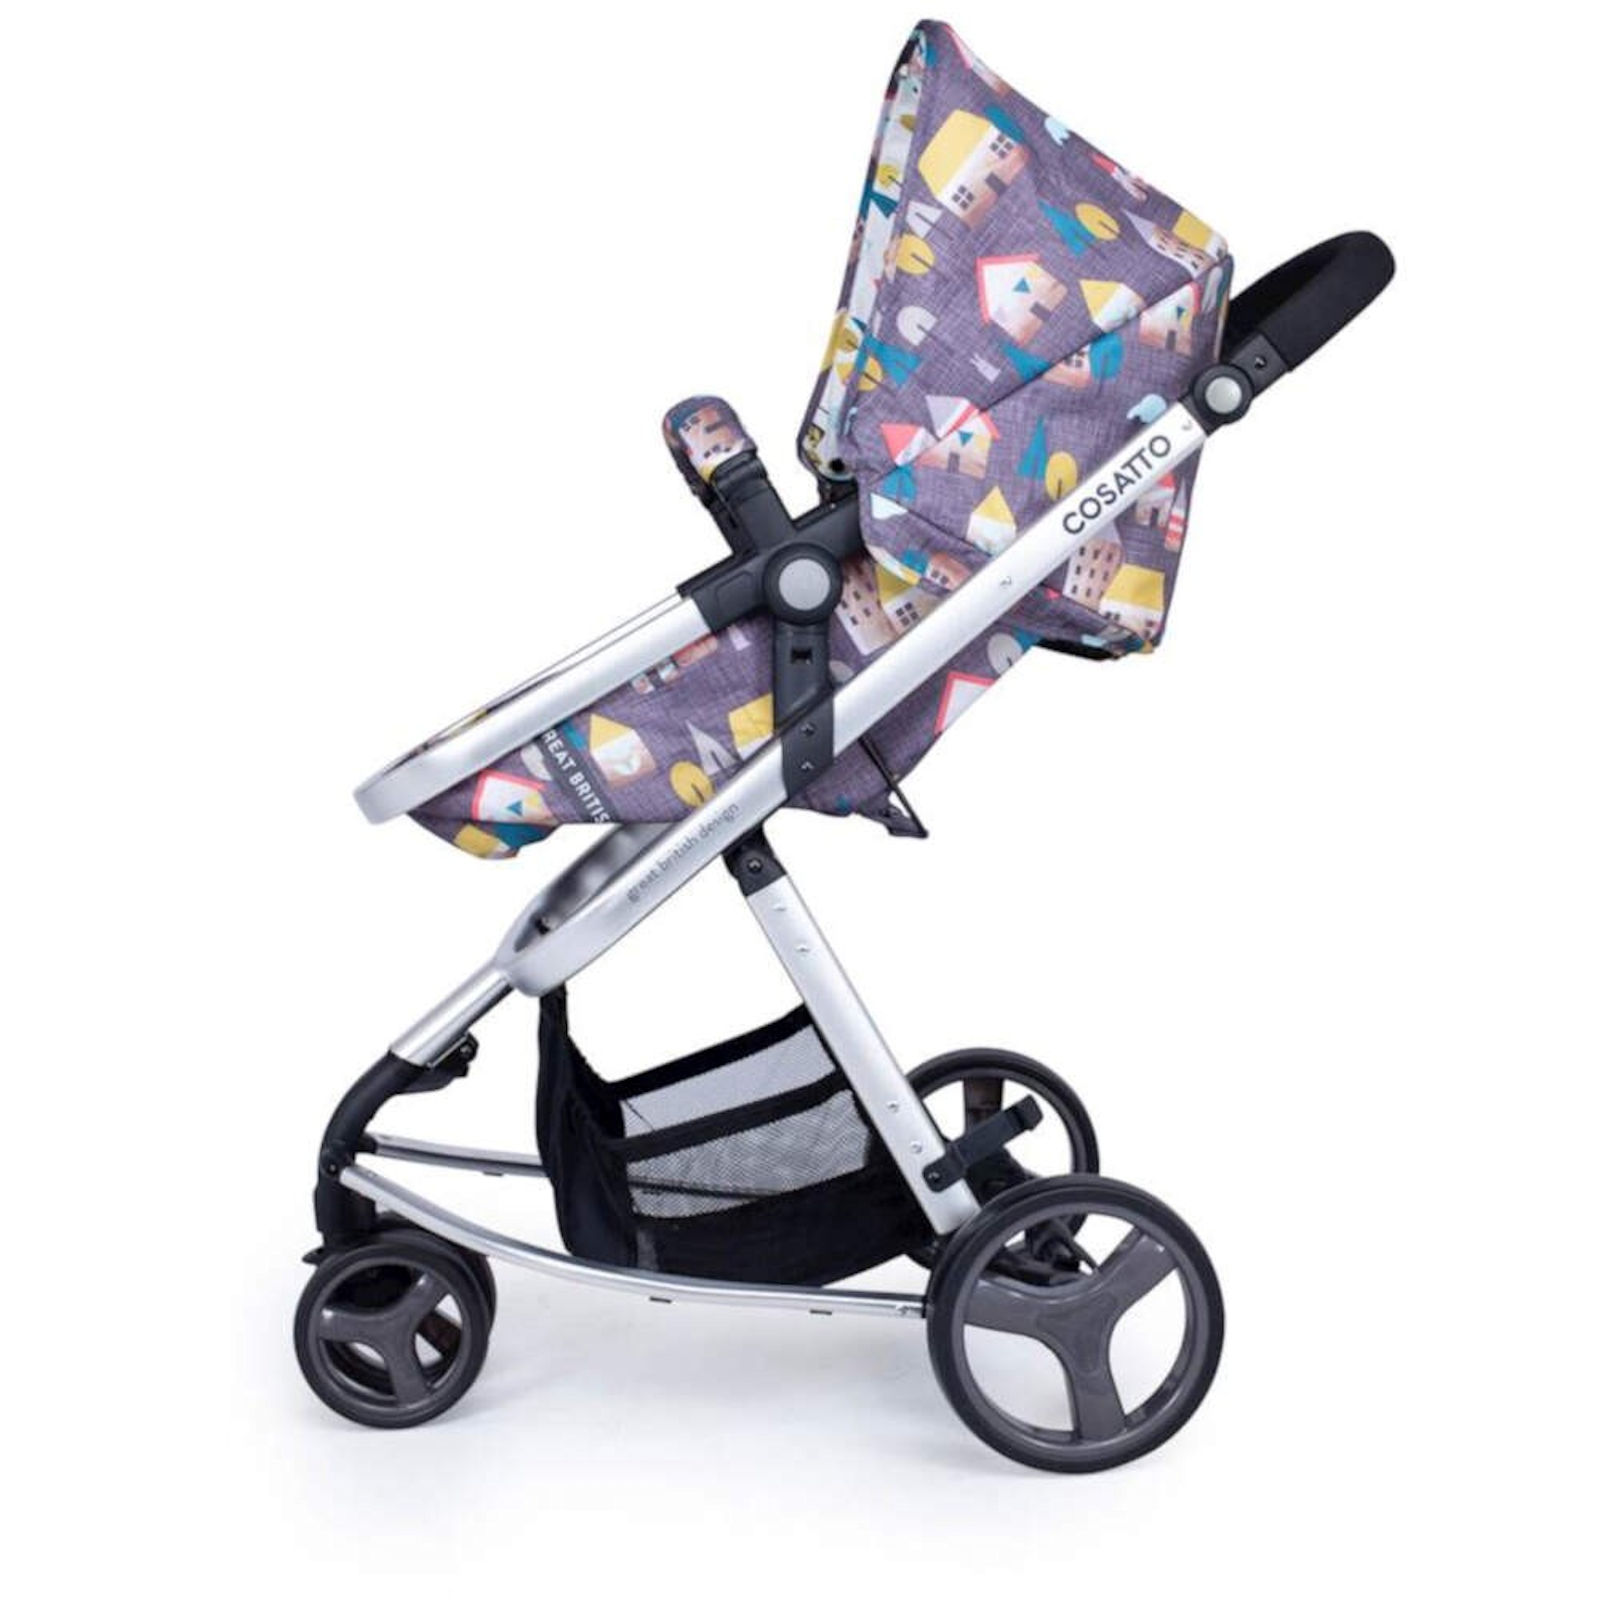 Reclining Travel Pushchair Cosatto Giggle Mix Pramette Hold Travel System Hygge